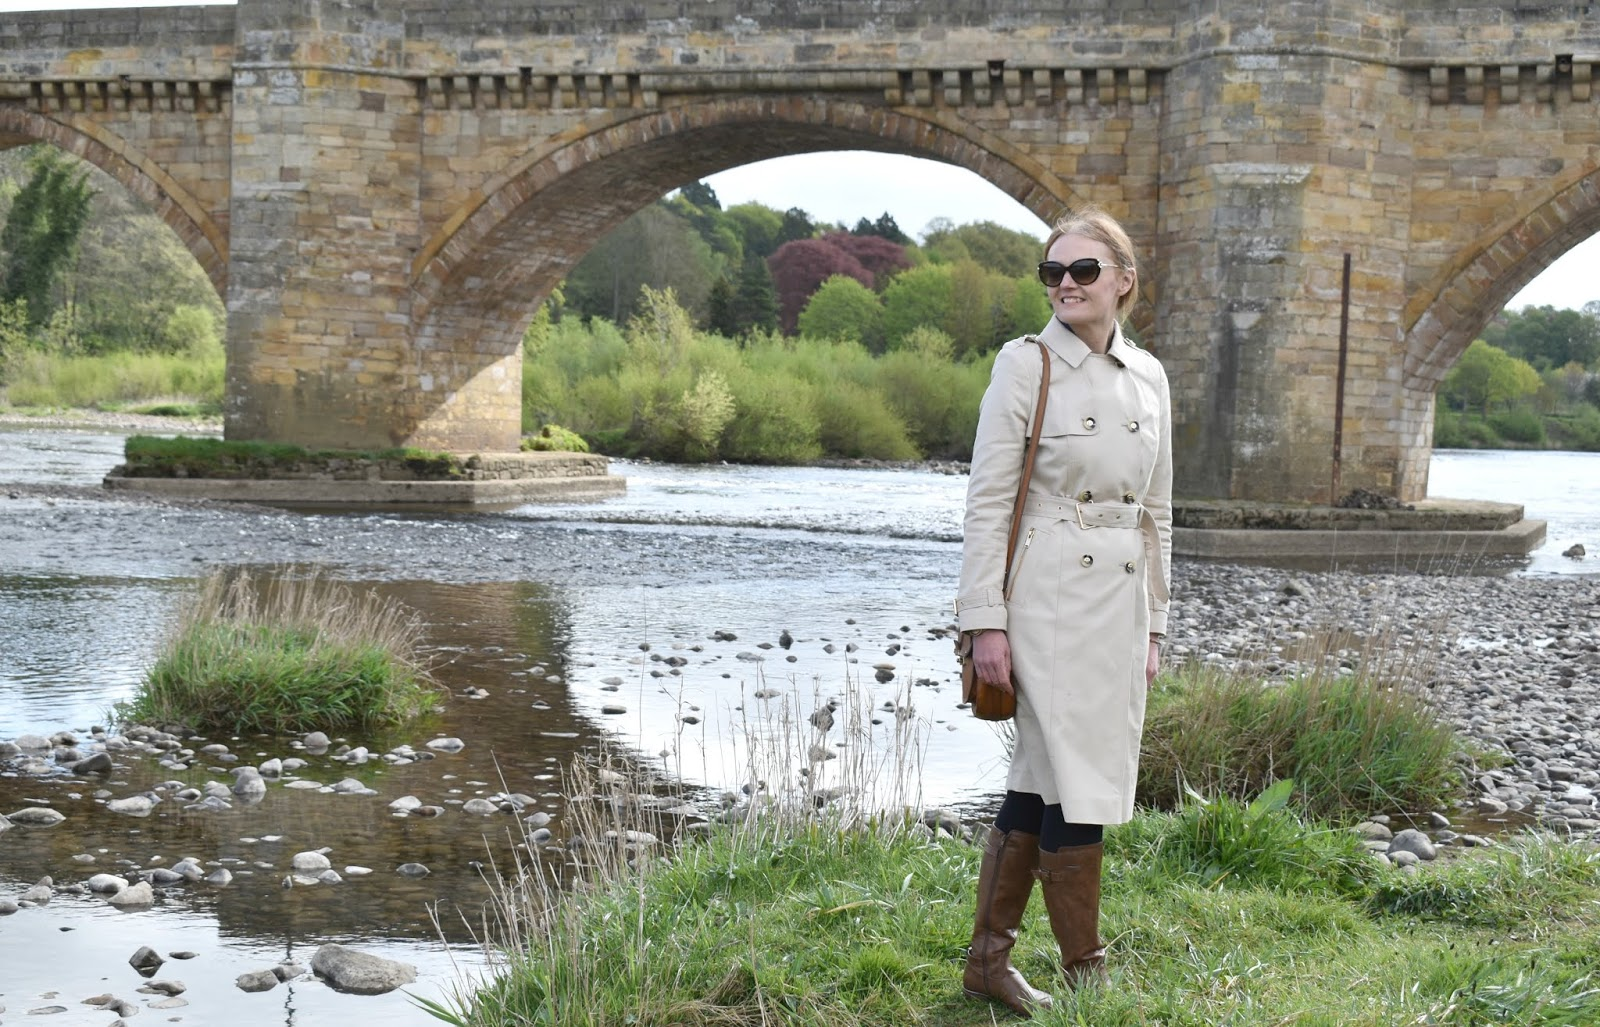 Day Tripping to Corbridge